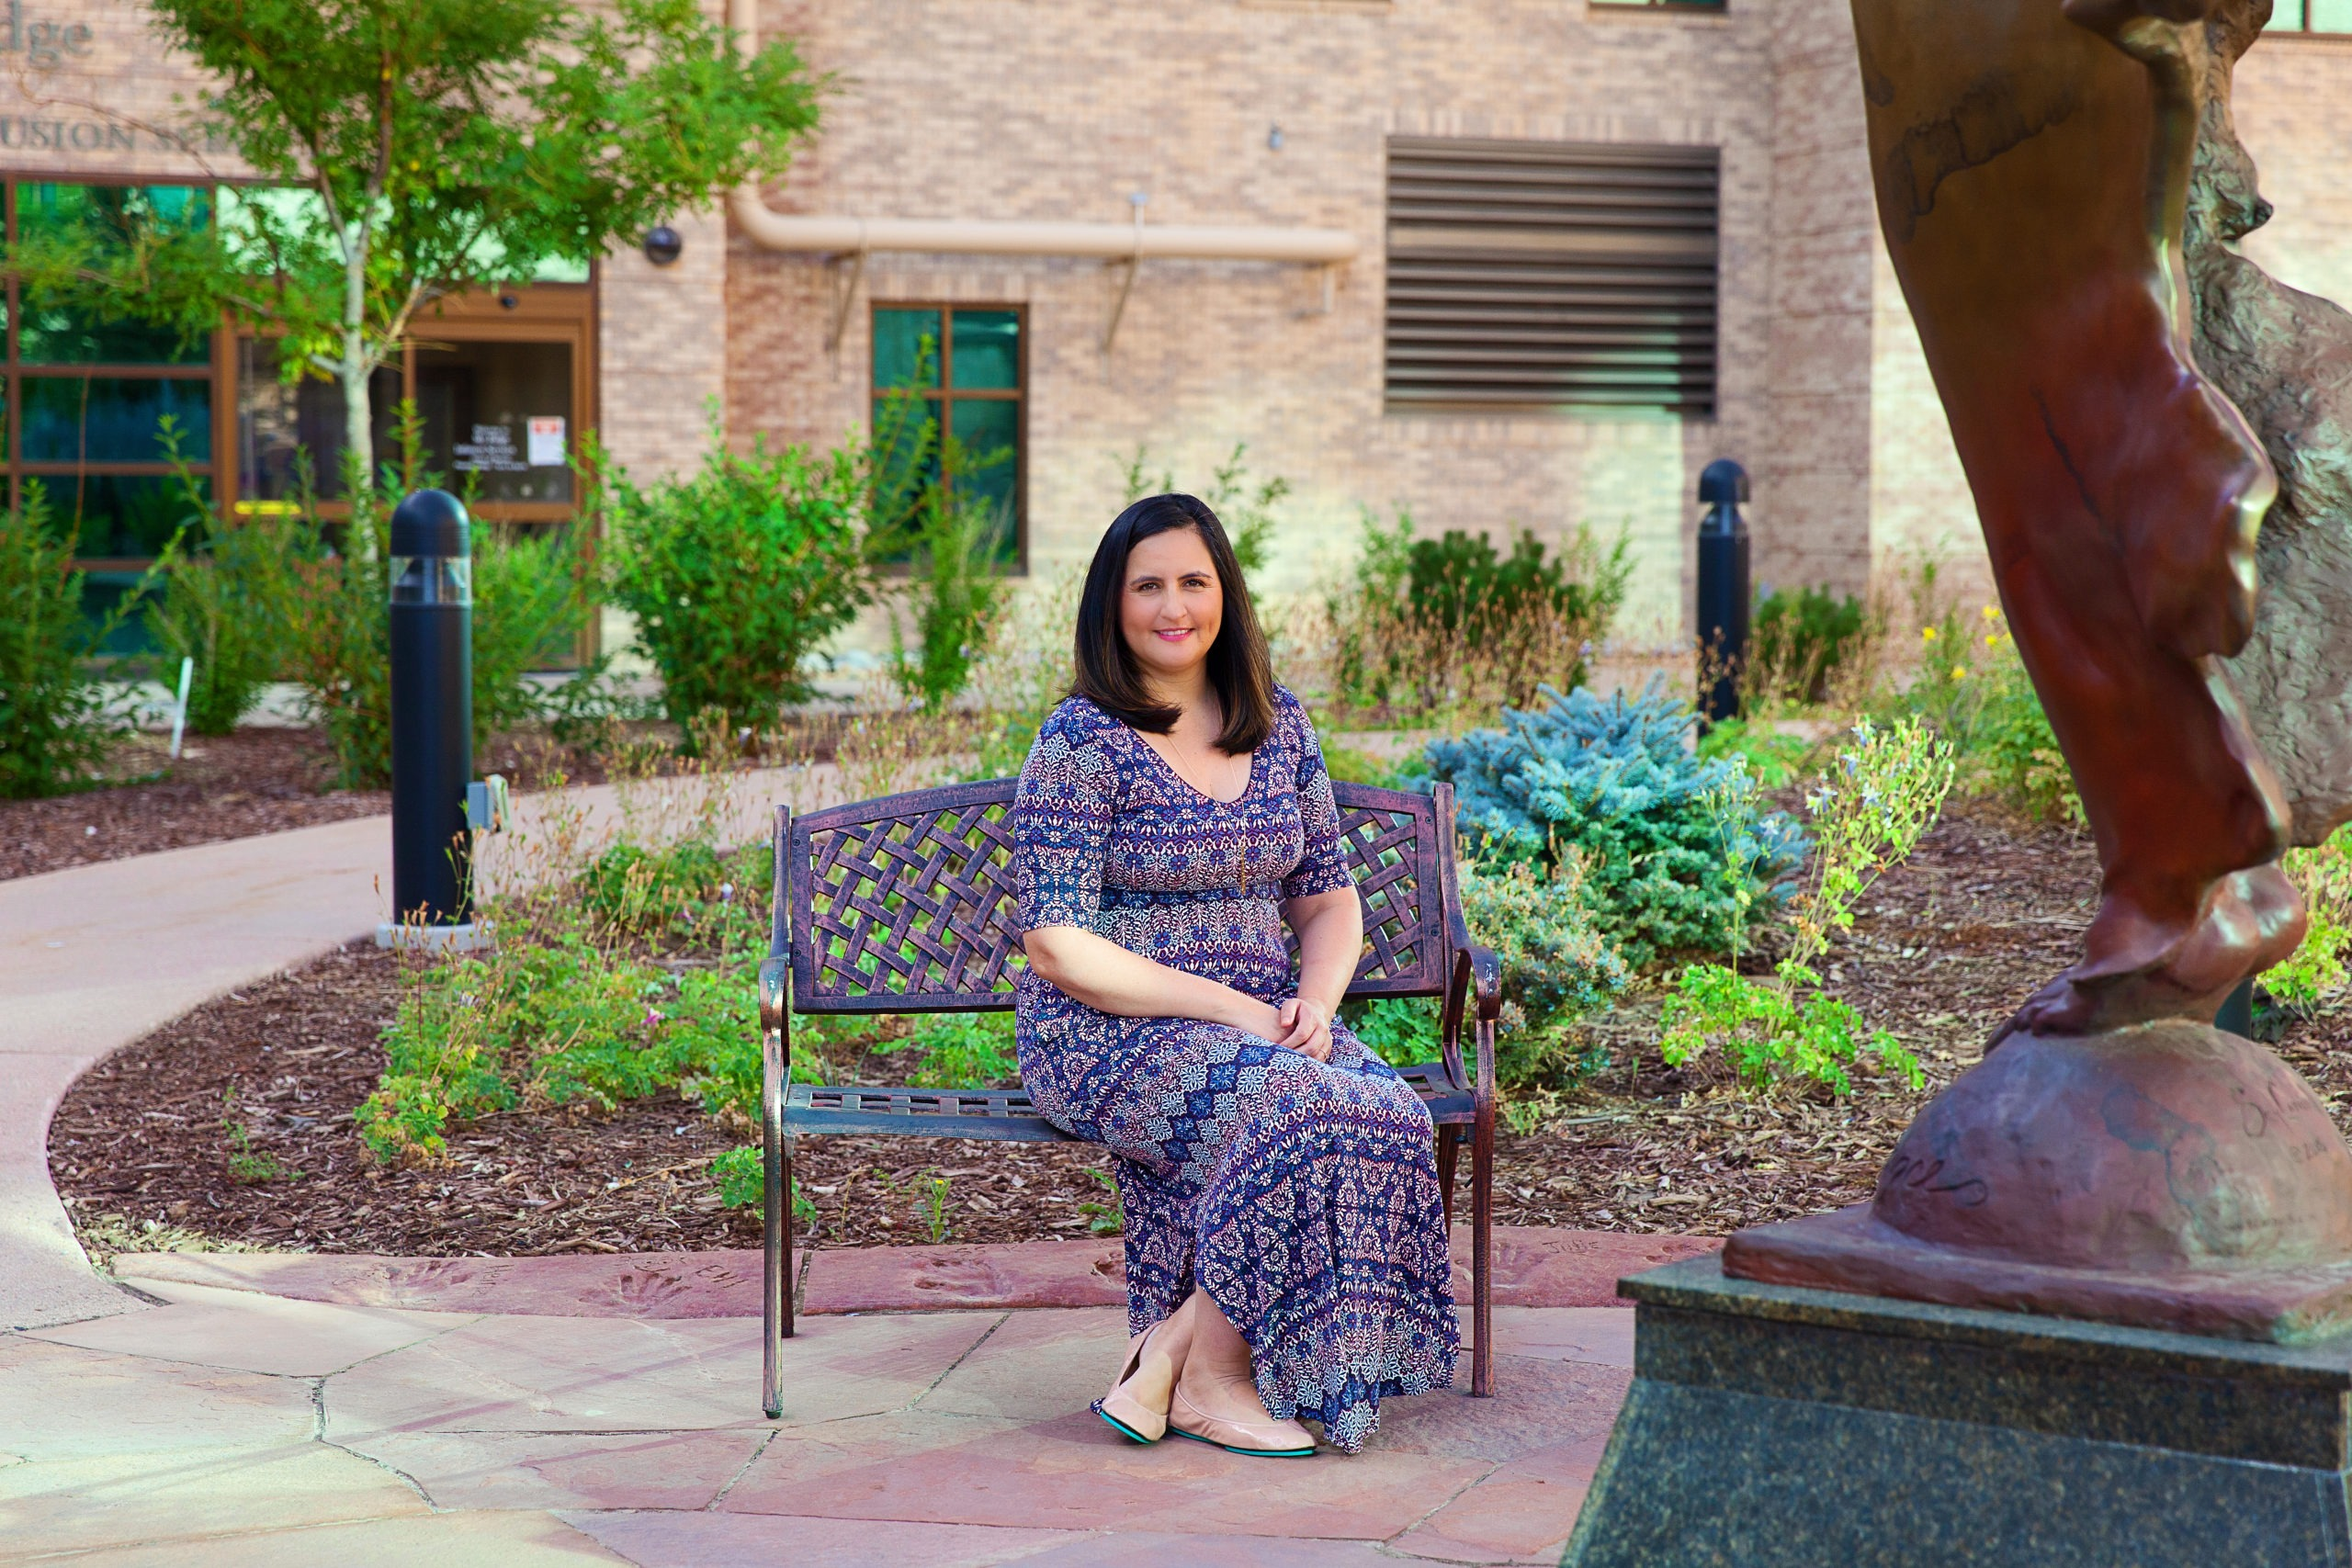 Dr. Mabel Mardones at Rocky Mountain Cancer Centers